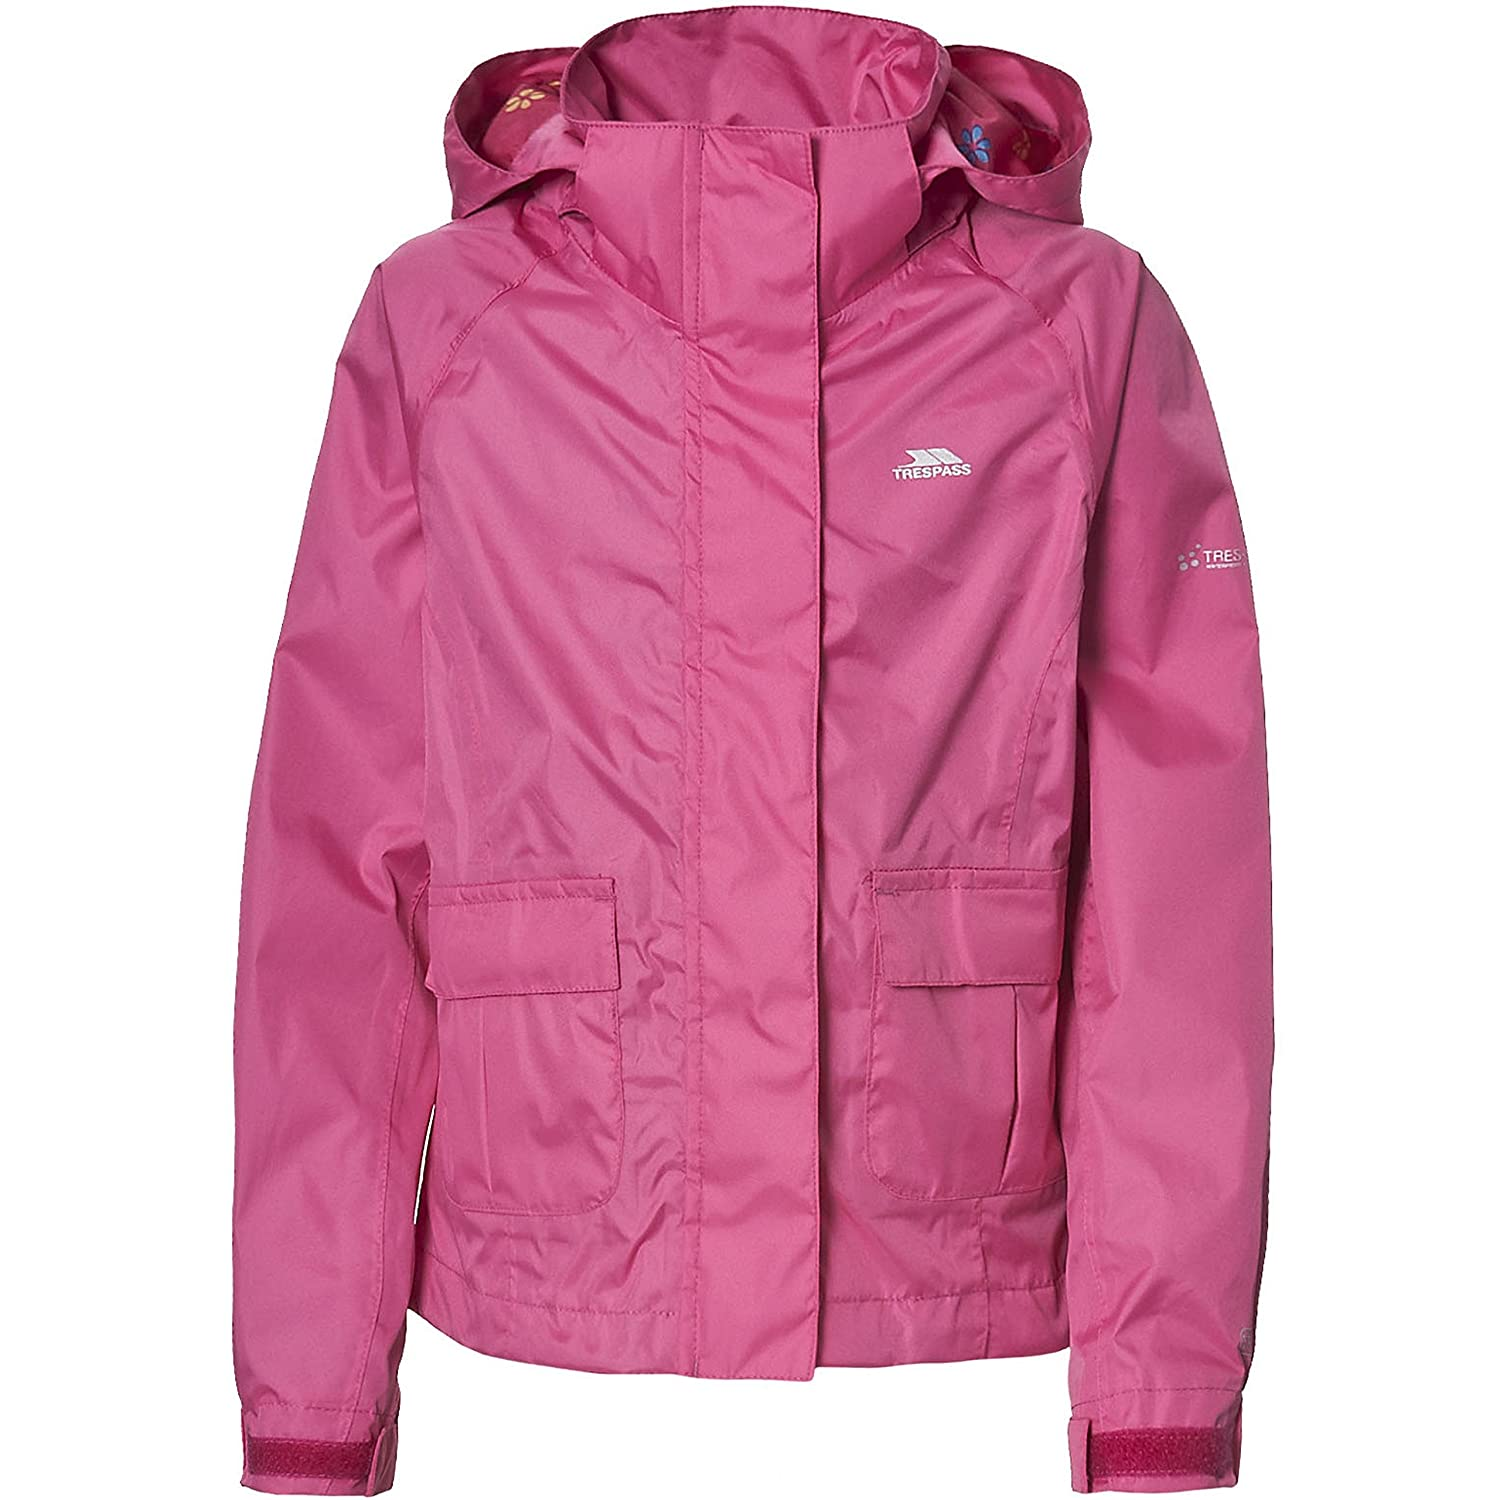 Trespass Childrens Girls Twister Zip Up Waterproof Jacket UTTP2017_6